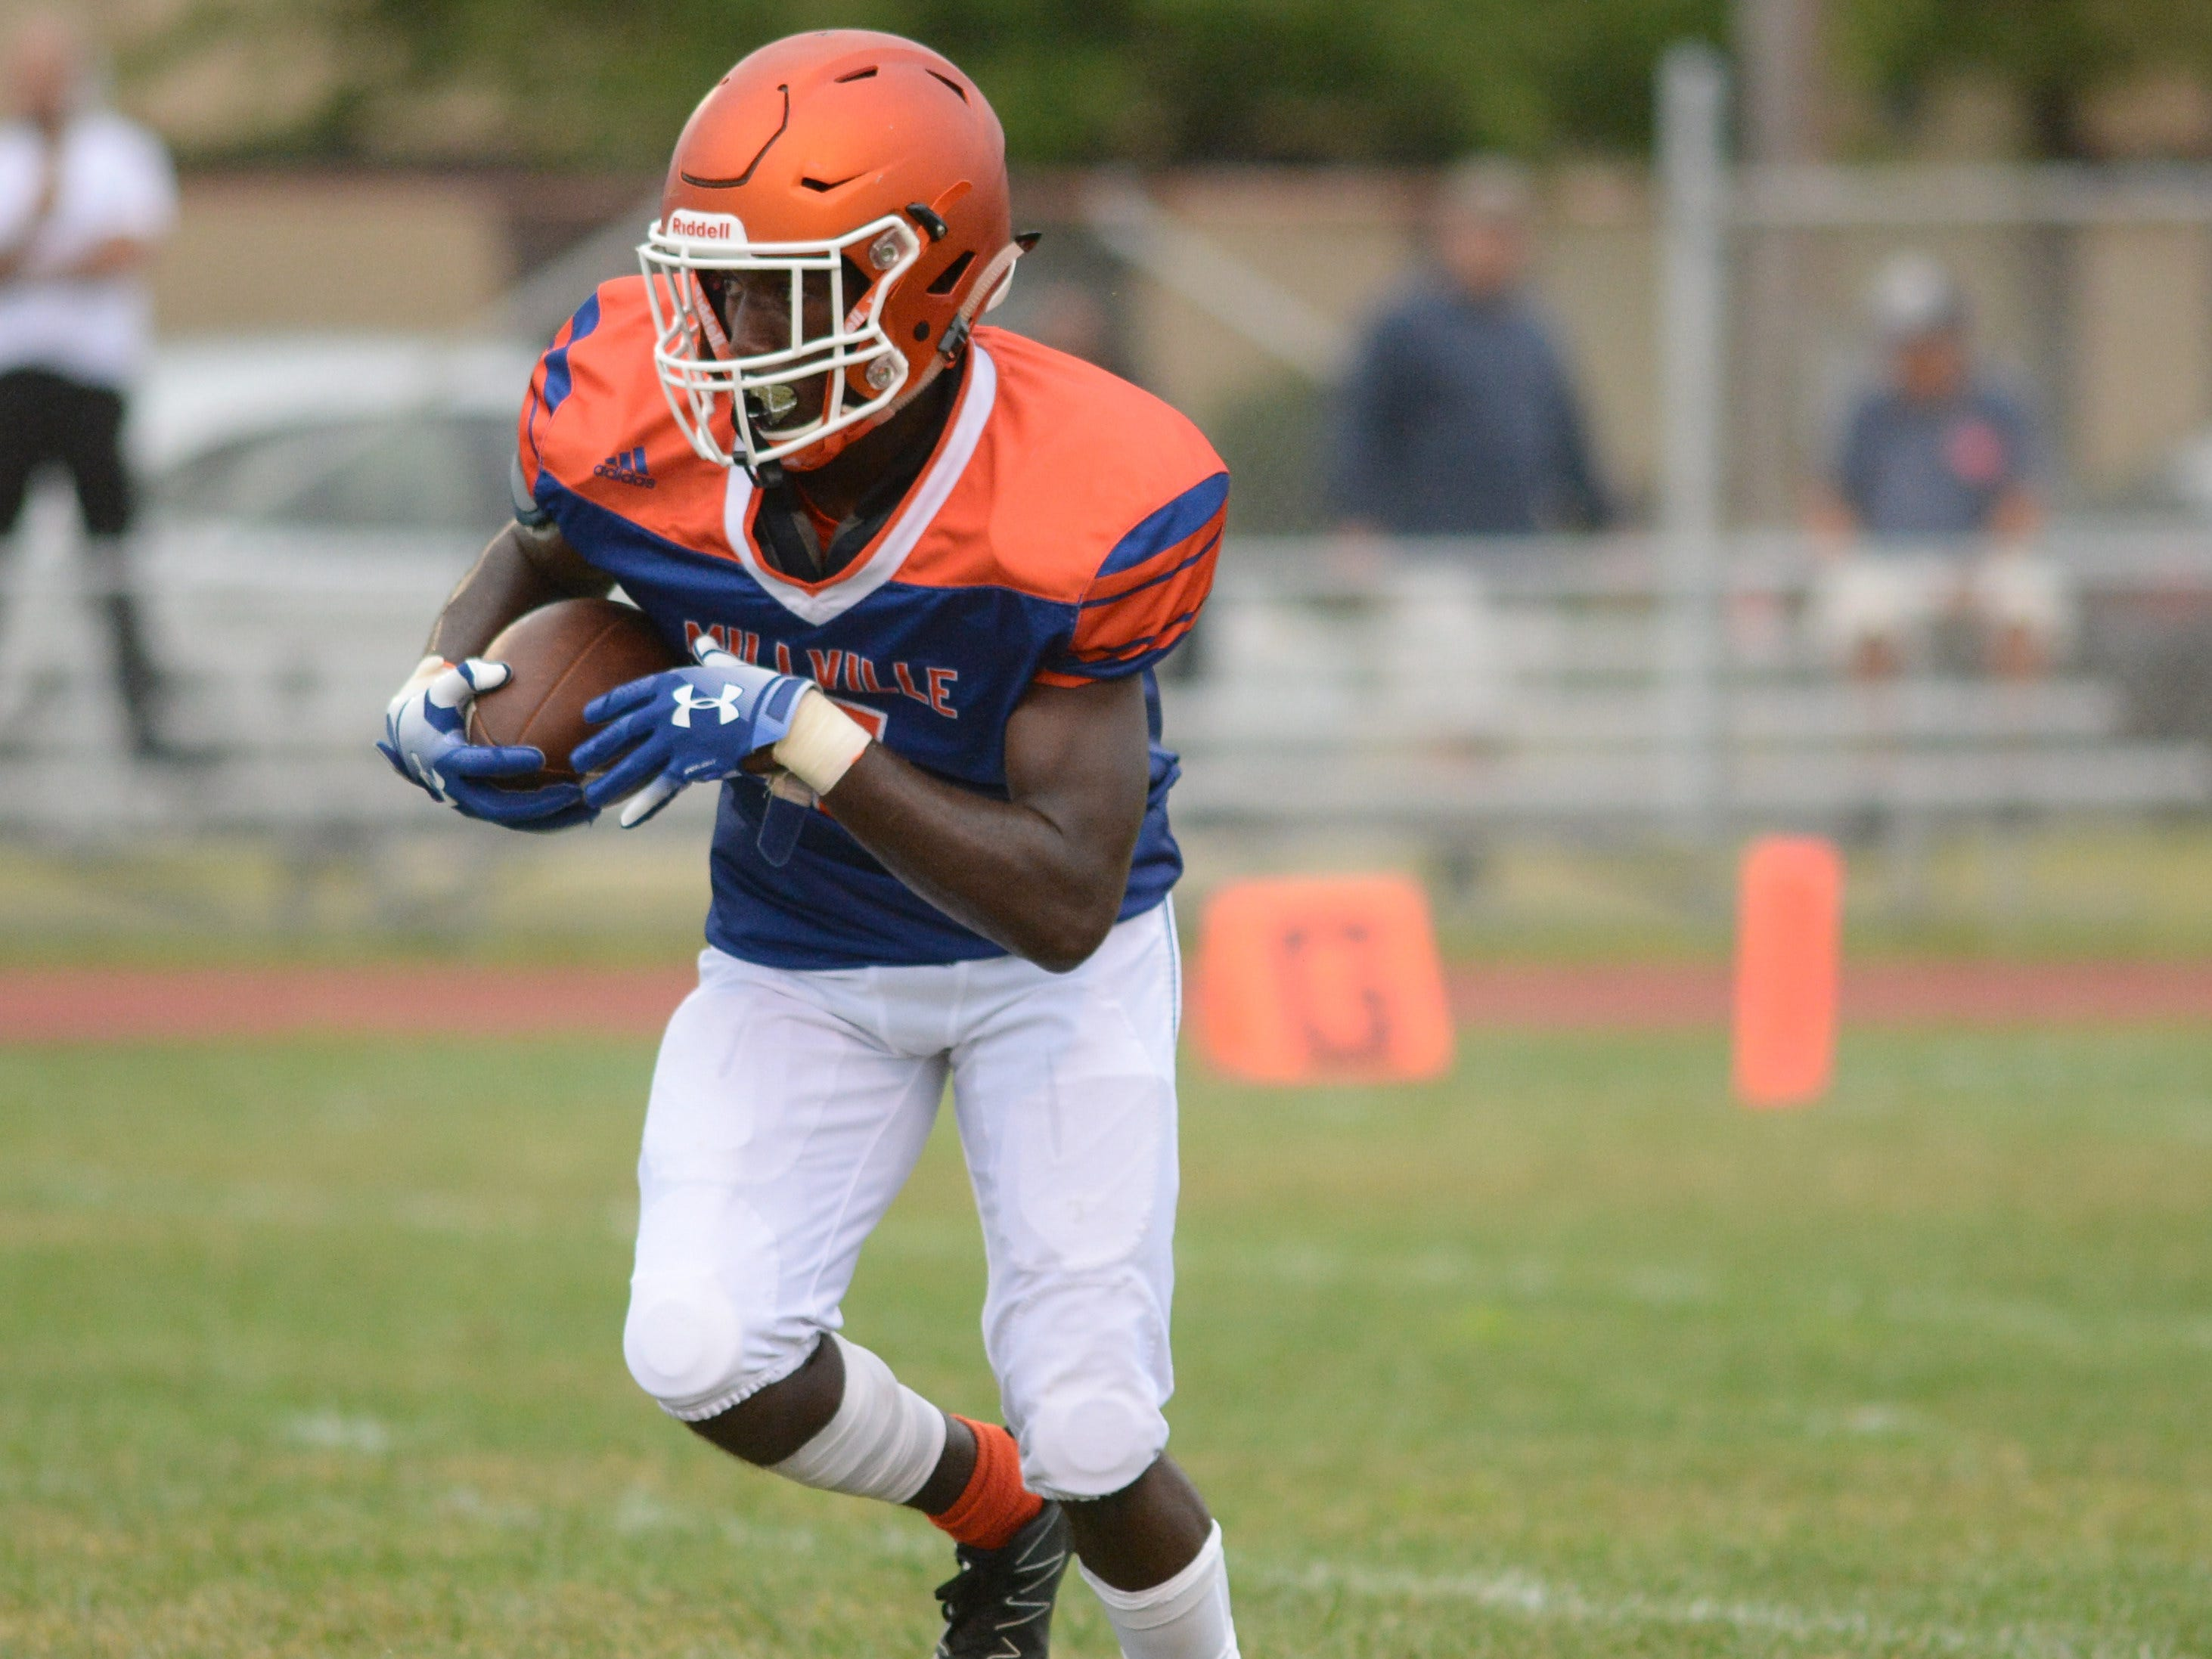 Millville's Kyle Yancy carries the ball during the season opening football game against St. Peter's Prep at Millville Memorial High School, Friday, Aug. 31, 2018.